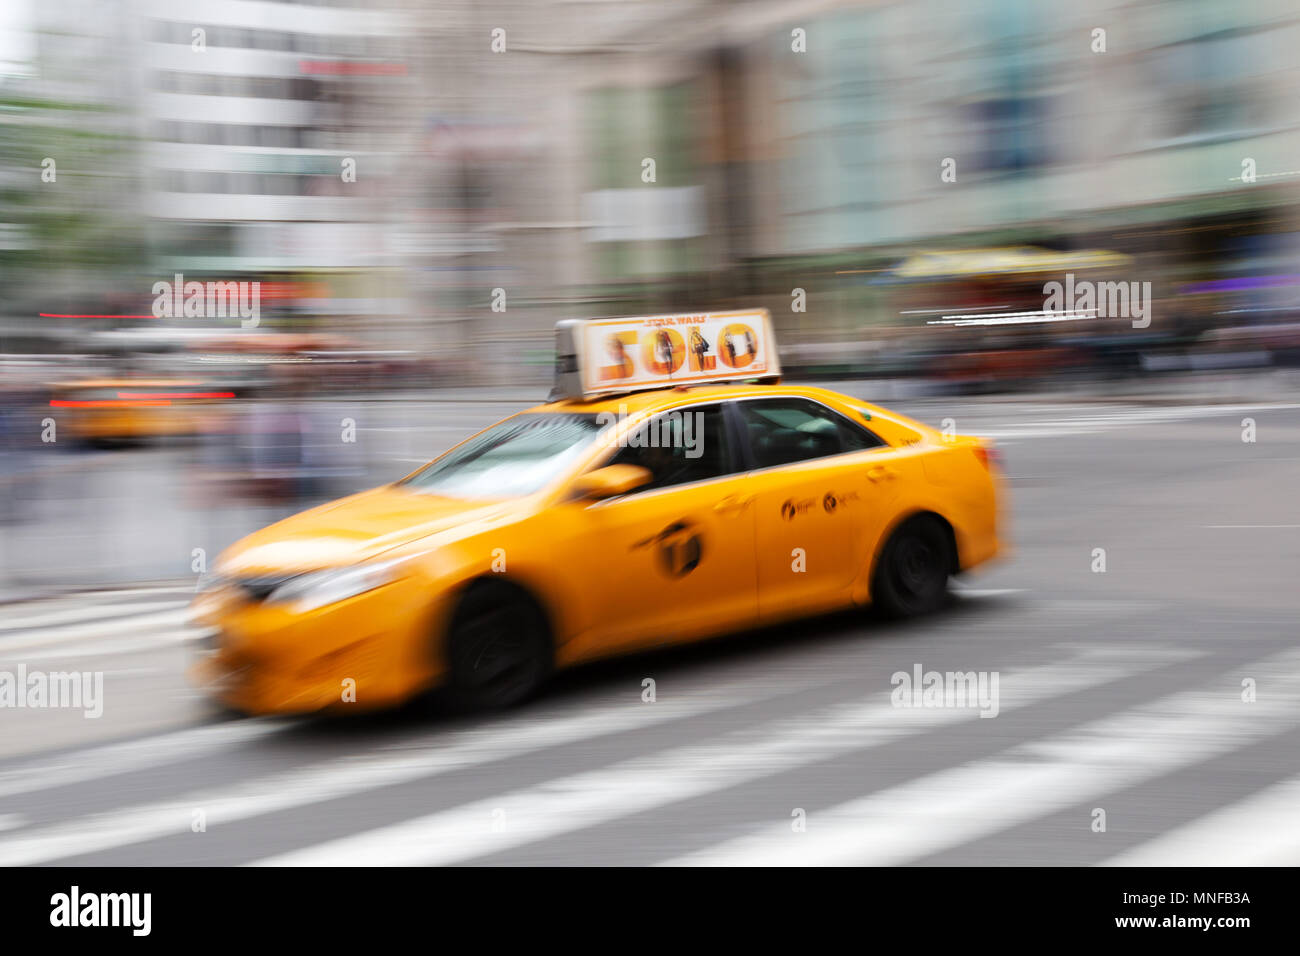 New York taxi, motion blur, fifth avenue, New York city, USA Stock Photo